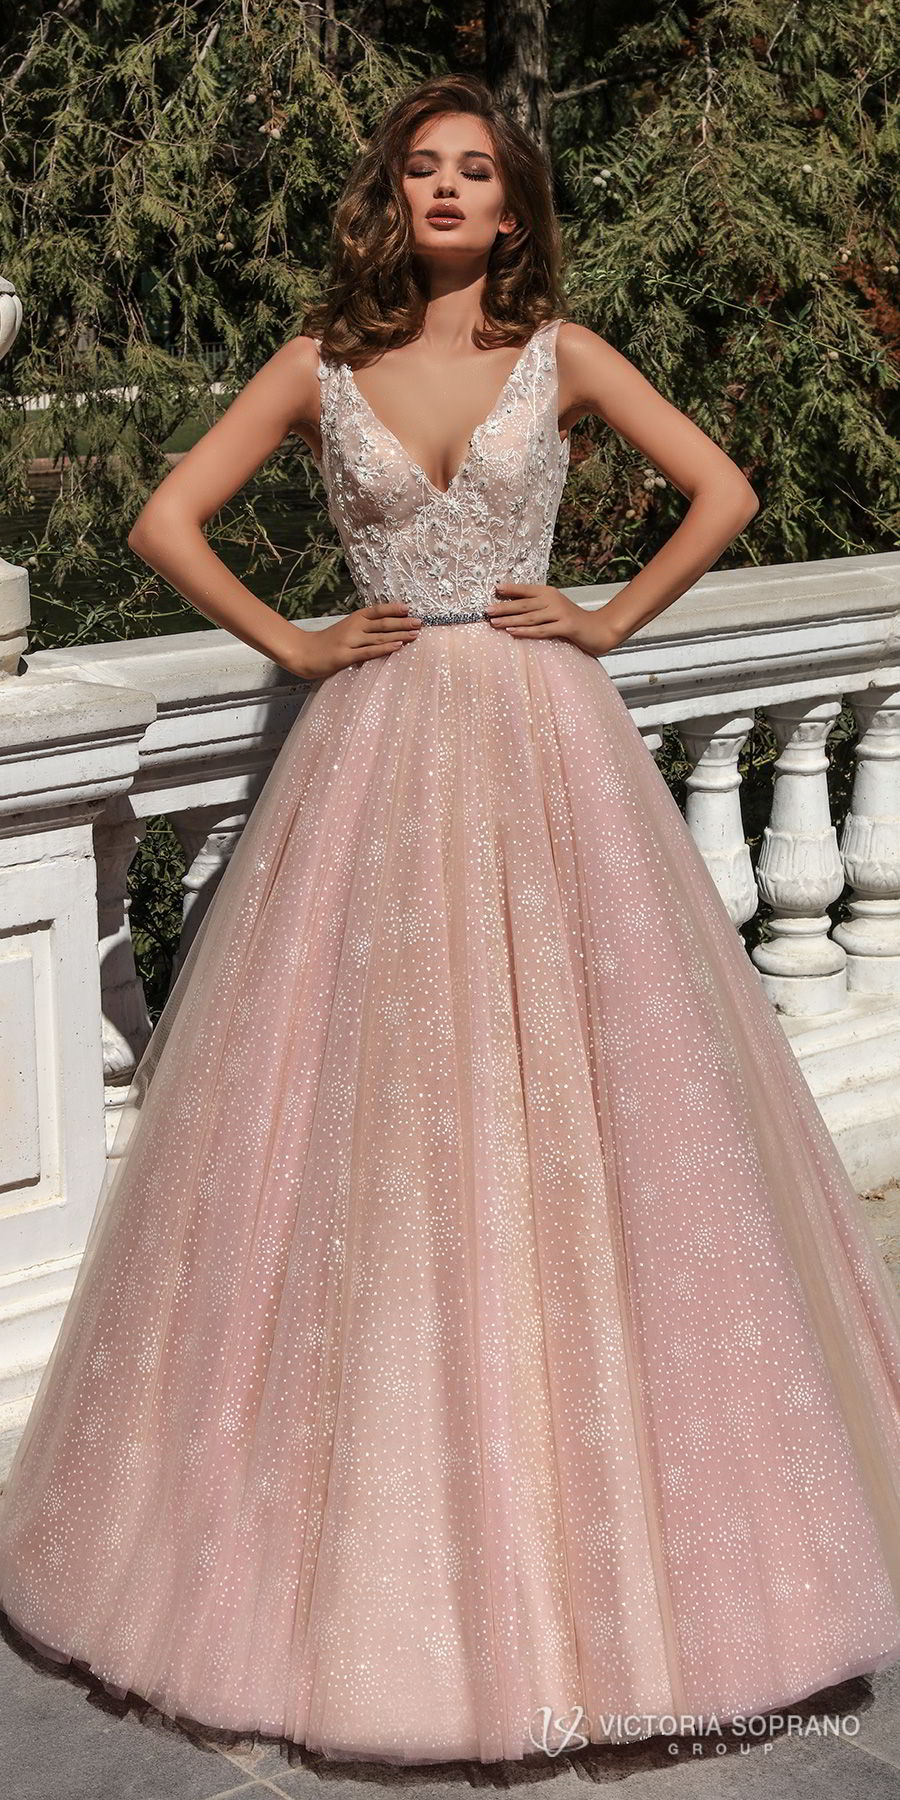 victoria soprano 2018 bridal sleeveless deep v neck heavily embellished bodice romantic pink a line wedding dress open v back chapel train (selesta) mv